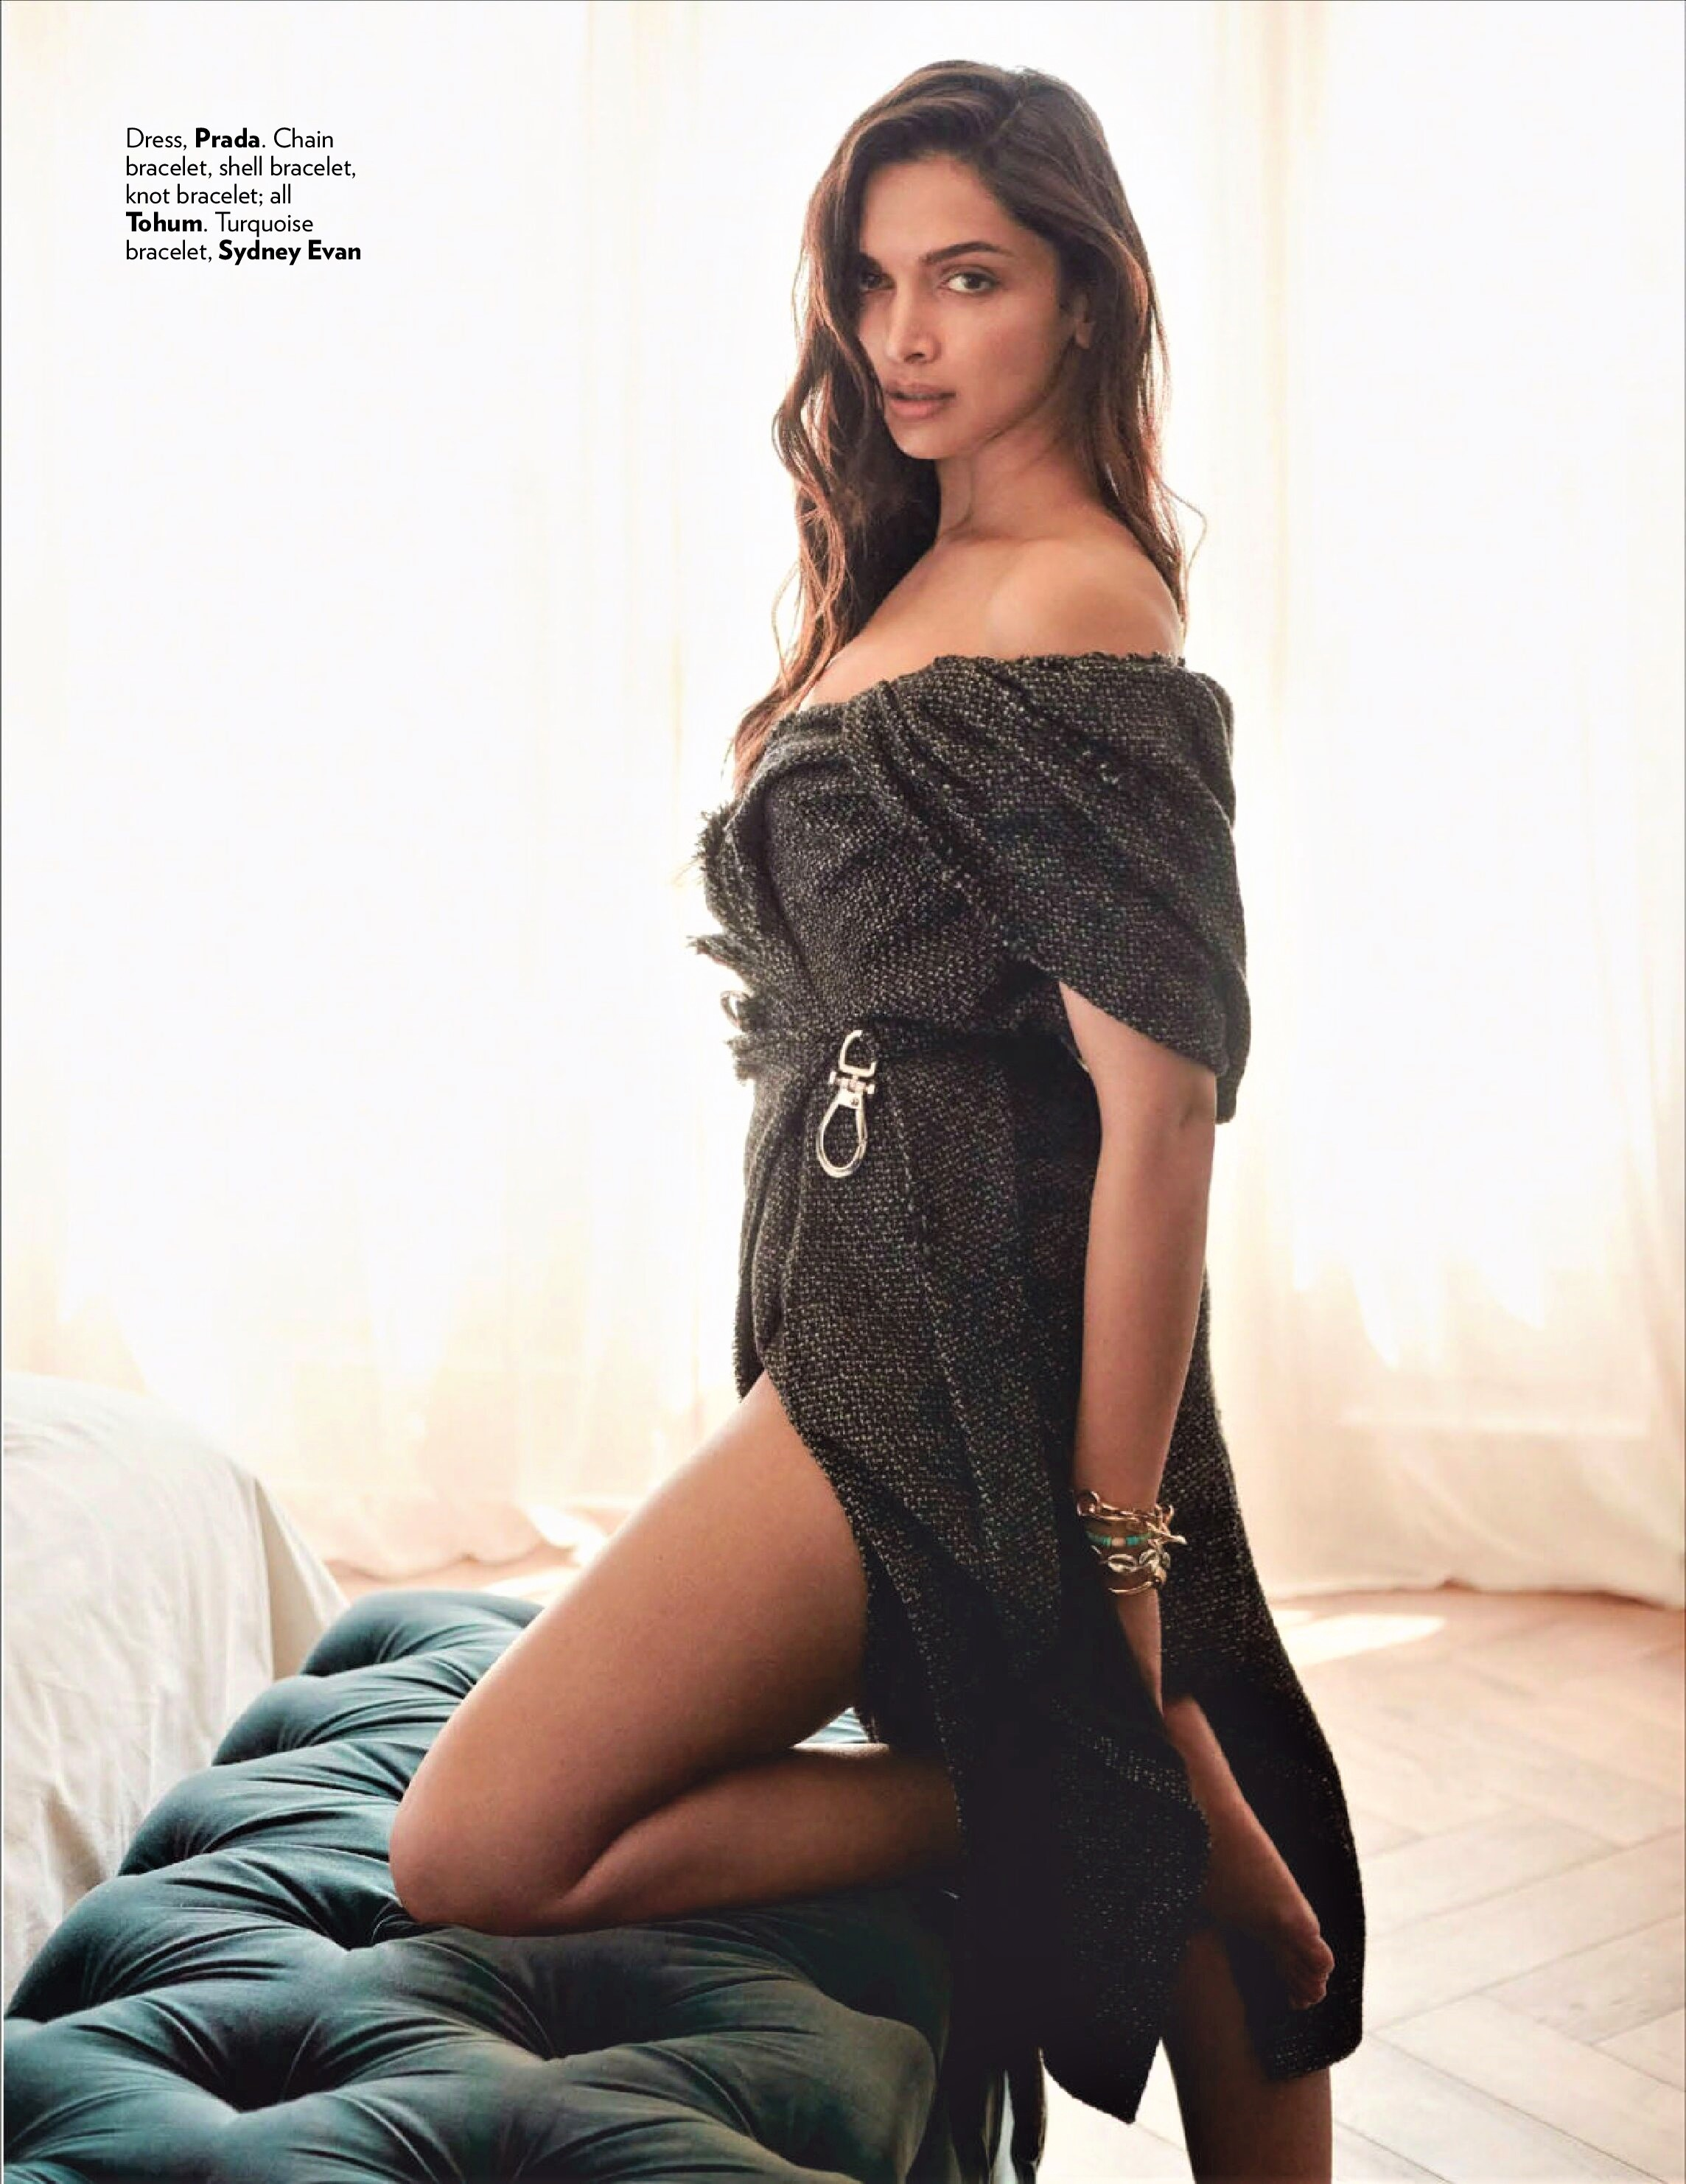 Deepika Padukone by Greg Swales for Vogue India August 2019 (5).jpg